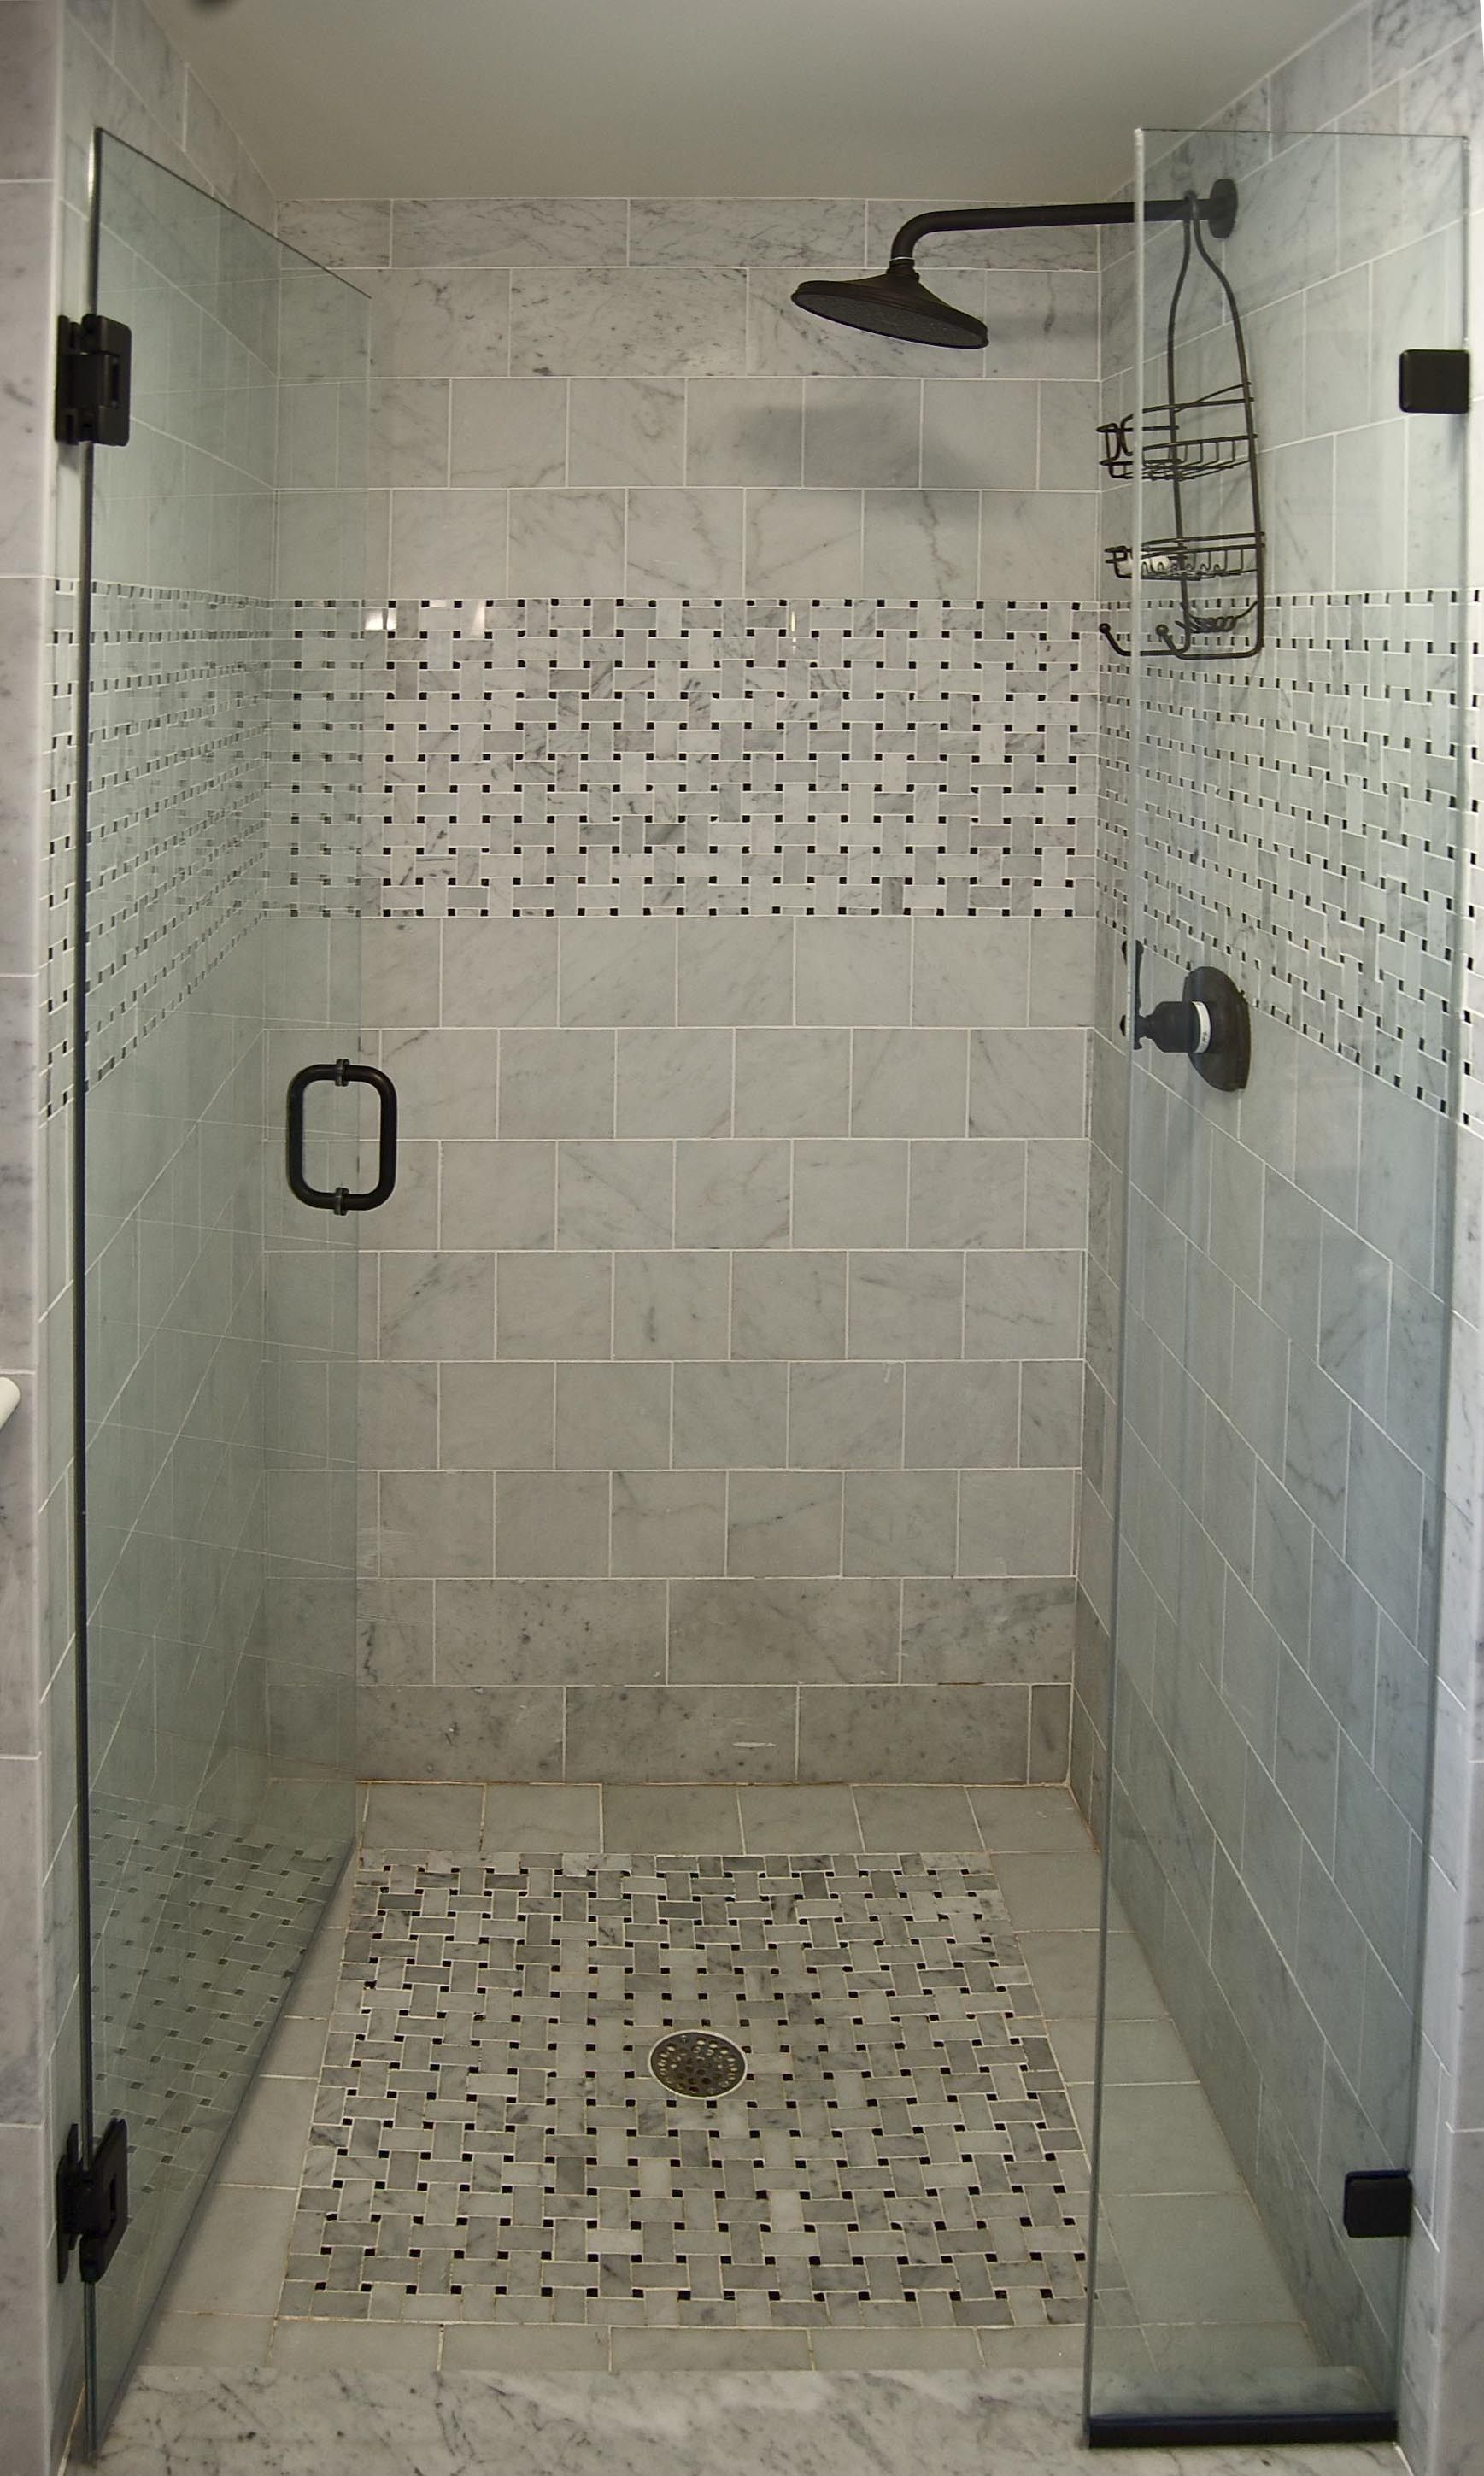 30 Shower Tile Ideas On A Budget Small Bathroom With Shower Bathroom Remodel Shower Bathroom Remodel Master